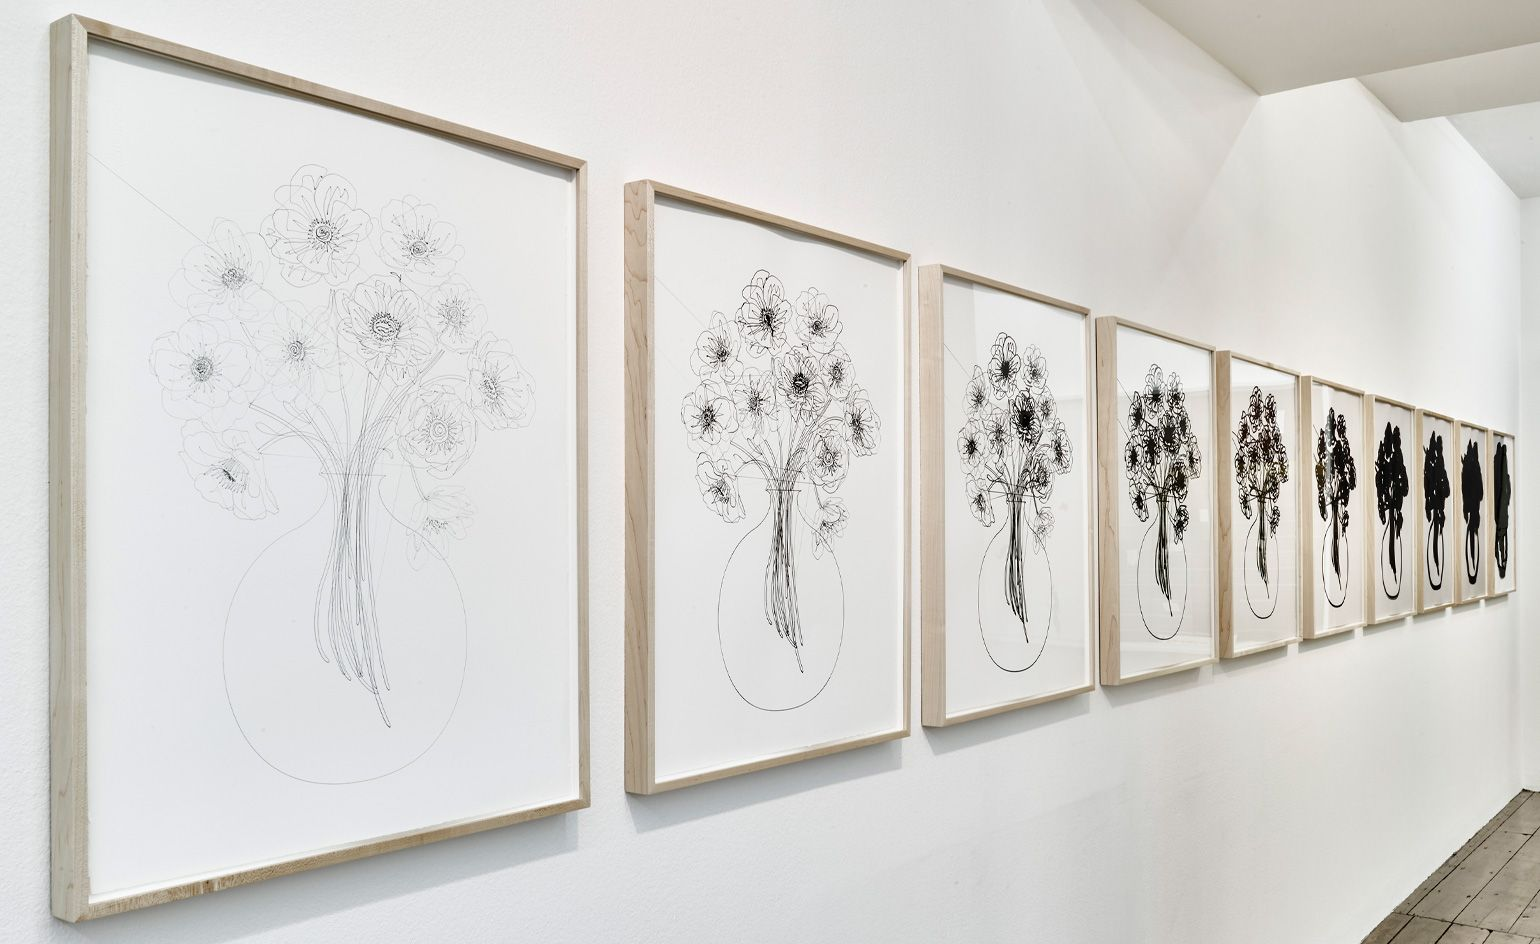 Argentinian artist Analia Saban arrives at London's Sprüth Magers | 'Fade Out' (Bouquet of Flowers, in Ten Steps) is a series of ten still lives, a line drawing of flowers grows blurred and indistinct until it is nothing but a Rorschach test blob. Courtesy of the artist and Sprüth Magers